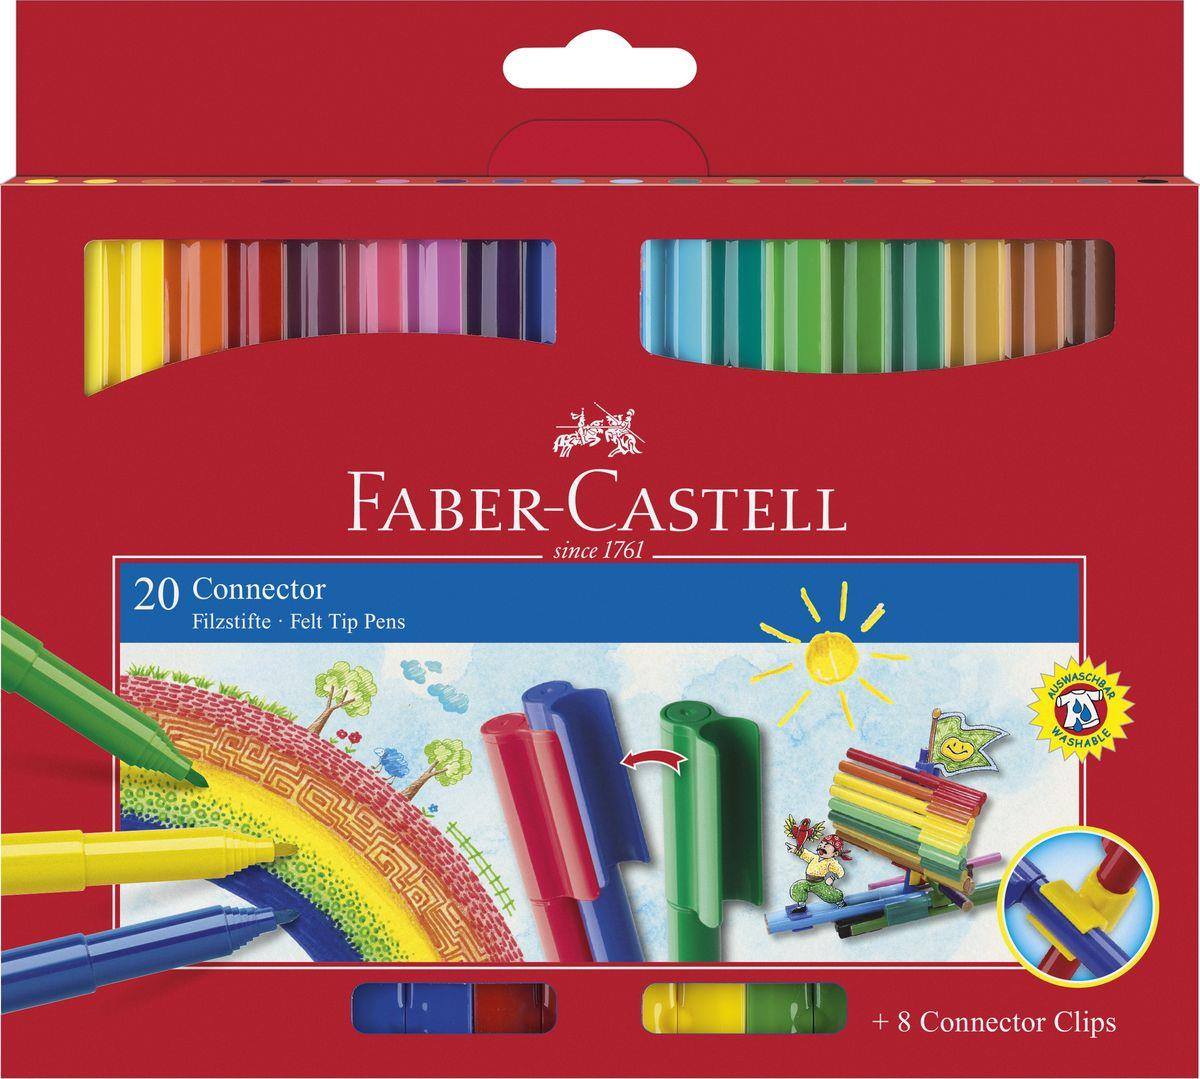 faber castell fasermaler connector pen 20er etui duo. Black Bedroom Furniture Sets. Home Design Ideas